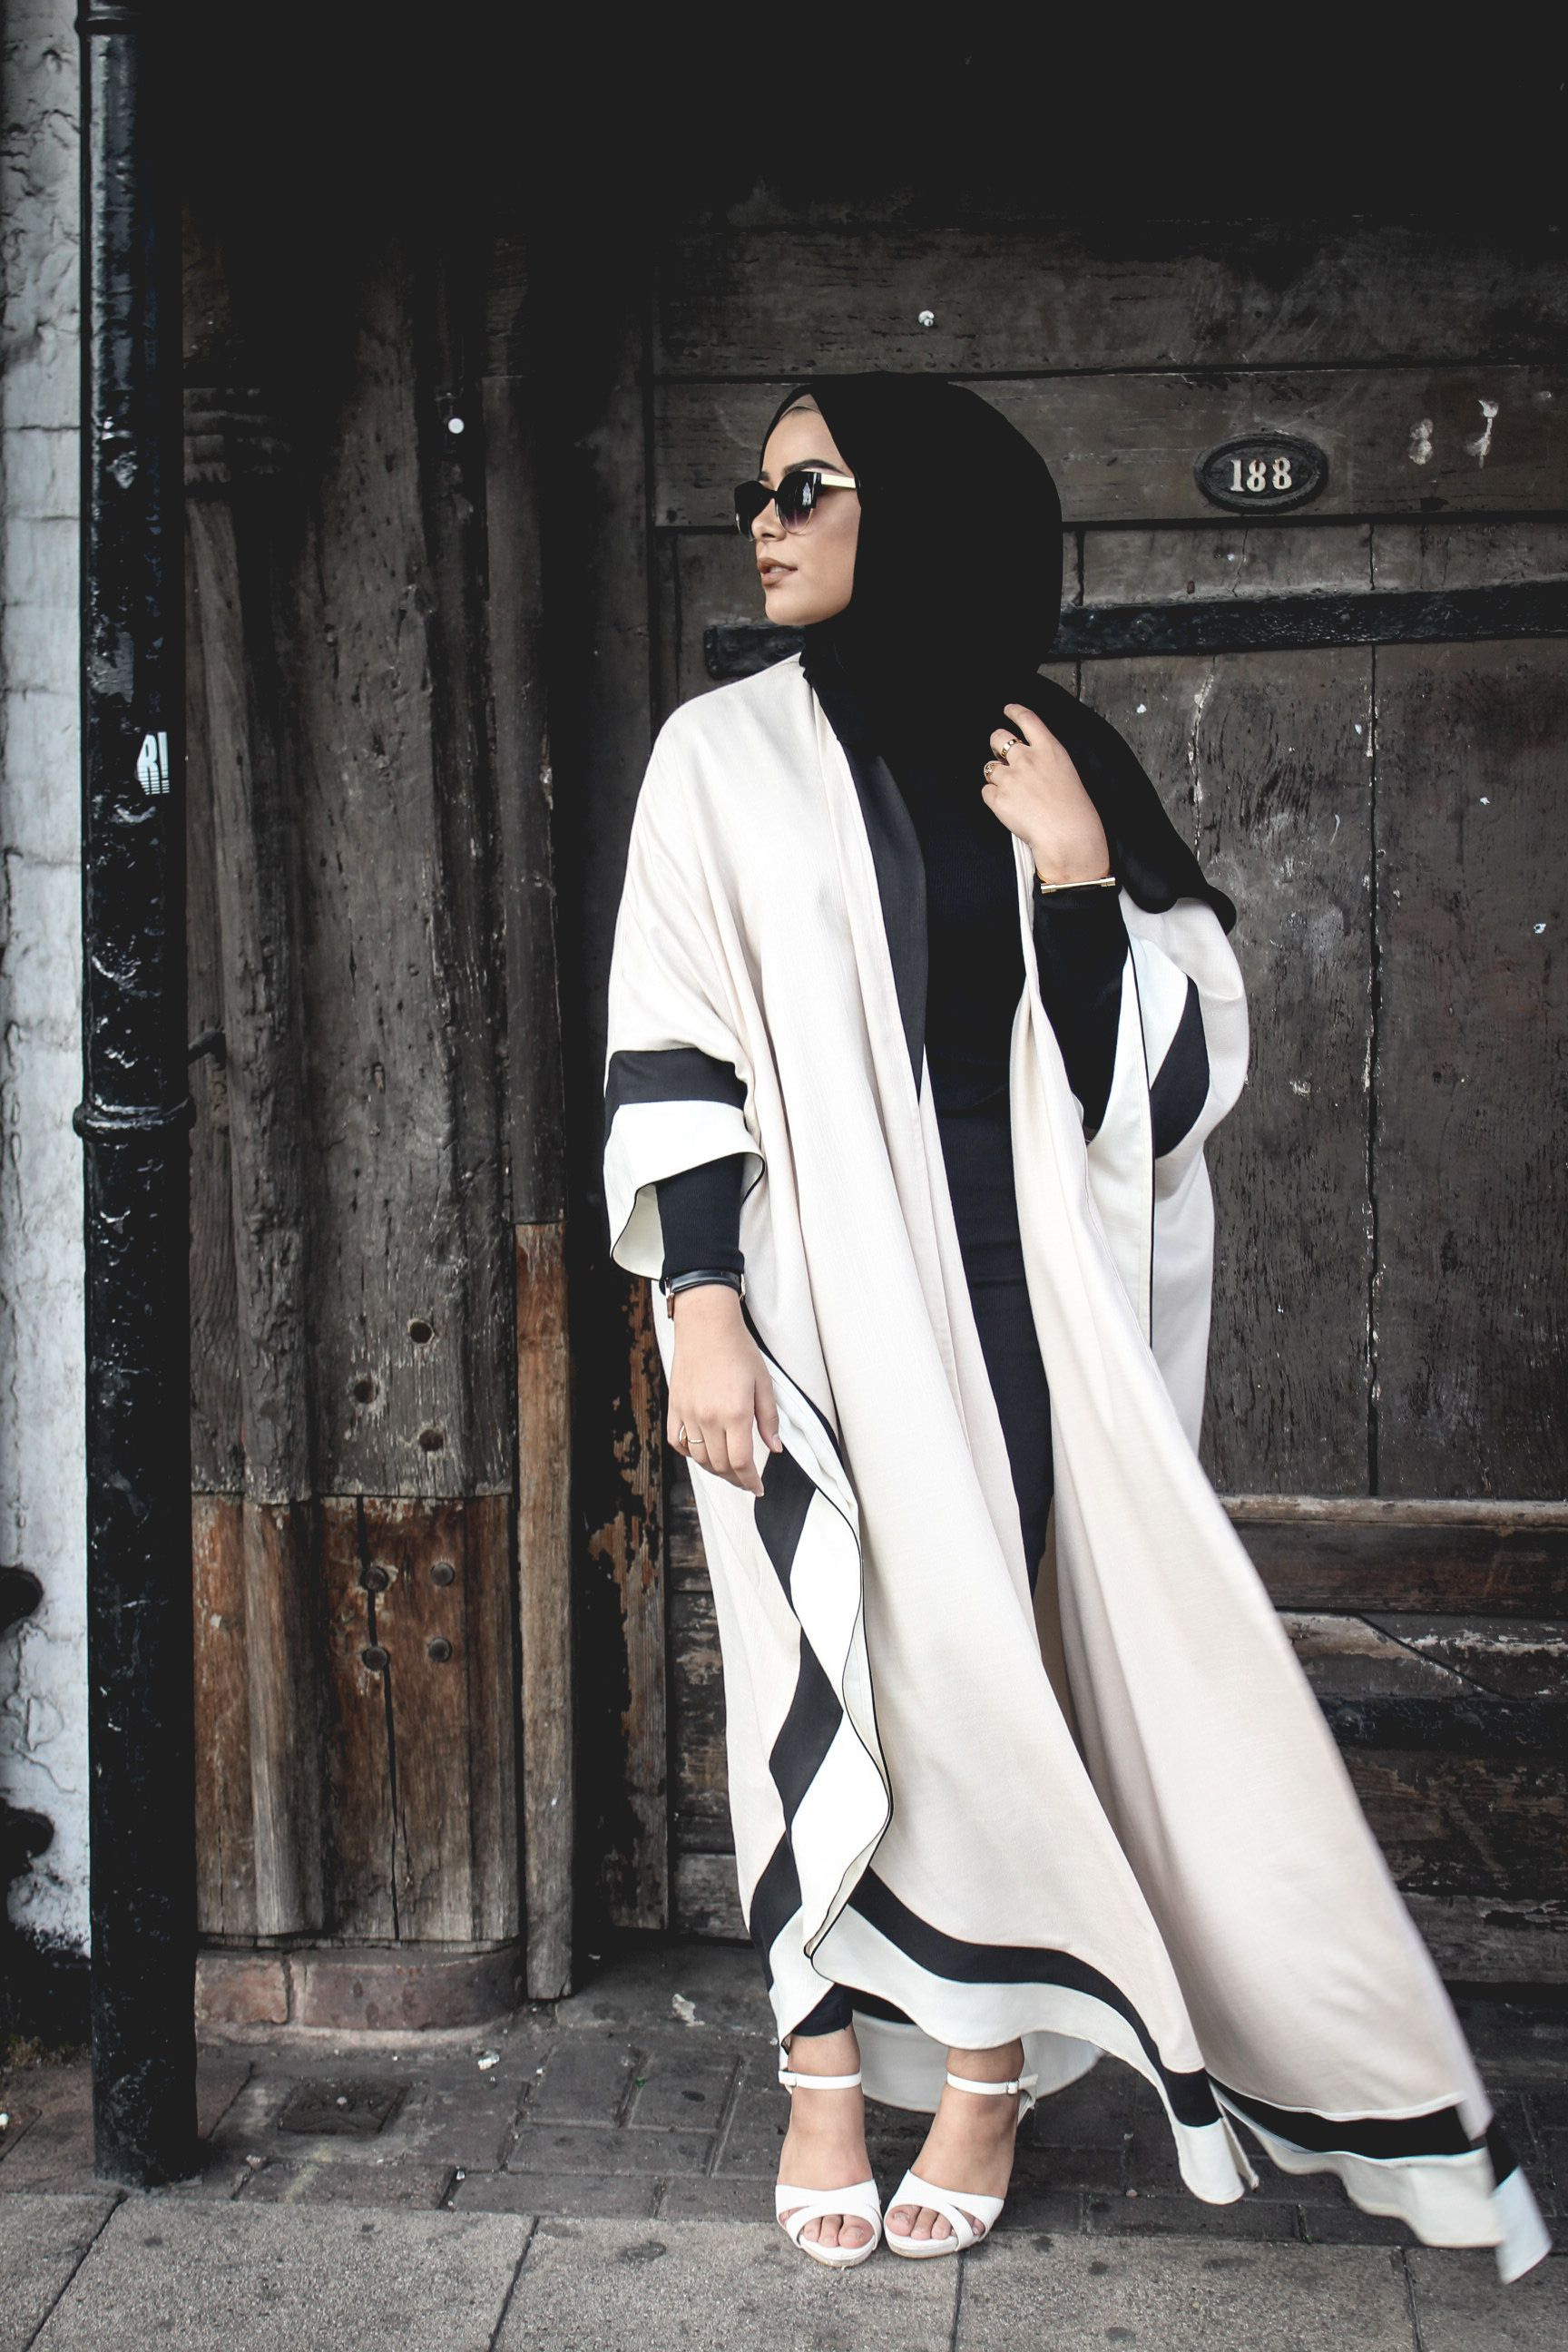 Hey loves! I'm sure many of you by now have seen this new open abaya style that has become very popular, especially in the Gulf. I was sent these stunning bespoke designs from the very talented @_leenaz who specialises in making these designs. I'm completely in love with both of them, they're so elegant and regal! …